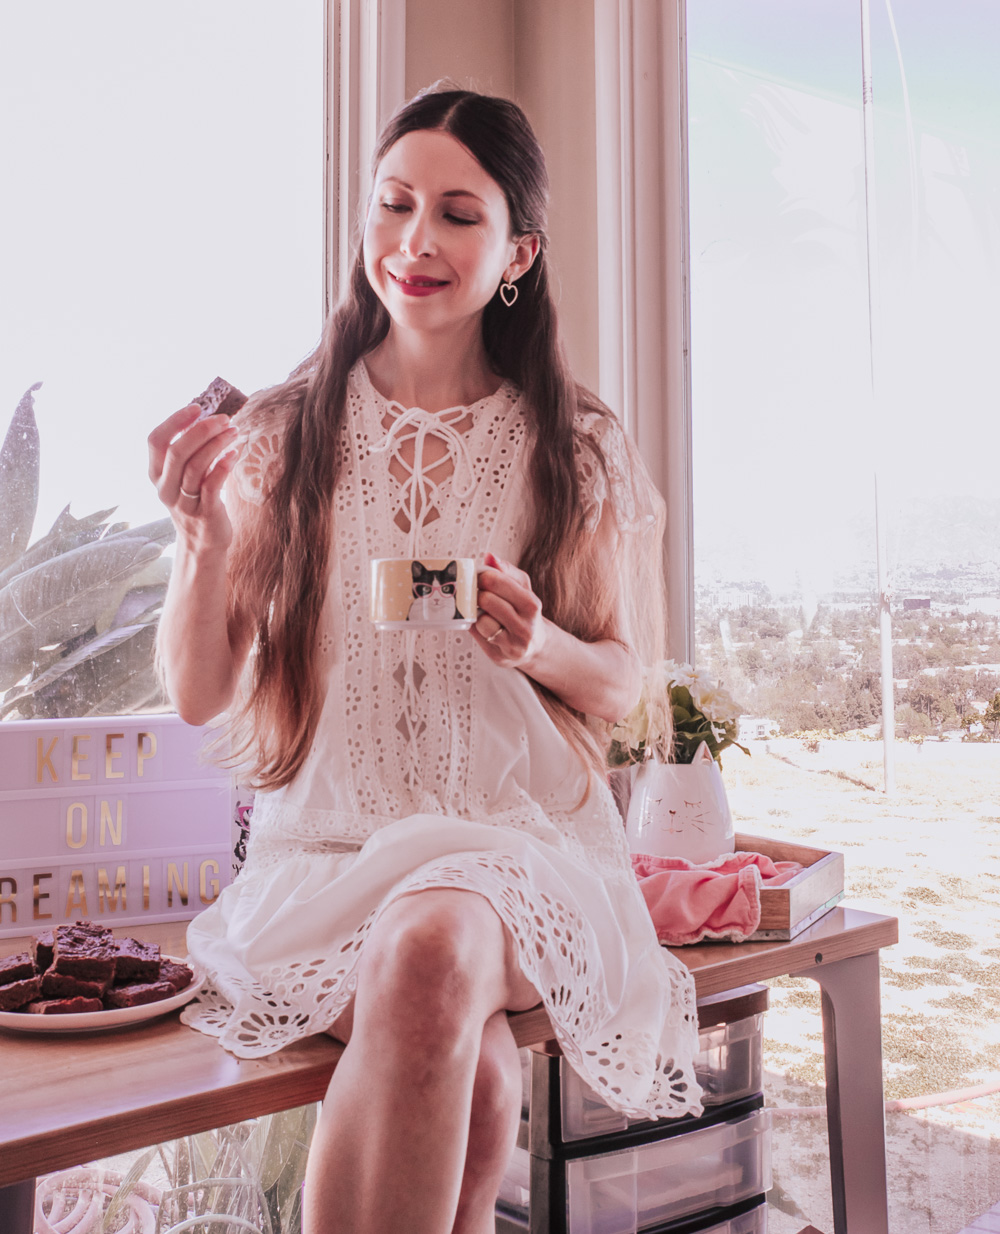 White Lace Dress: pretty and comfortable outfit idea for Spring and Summer!